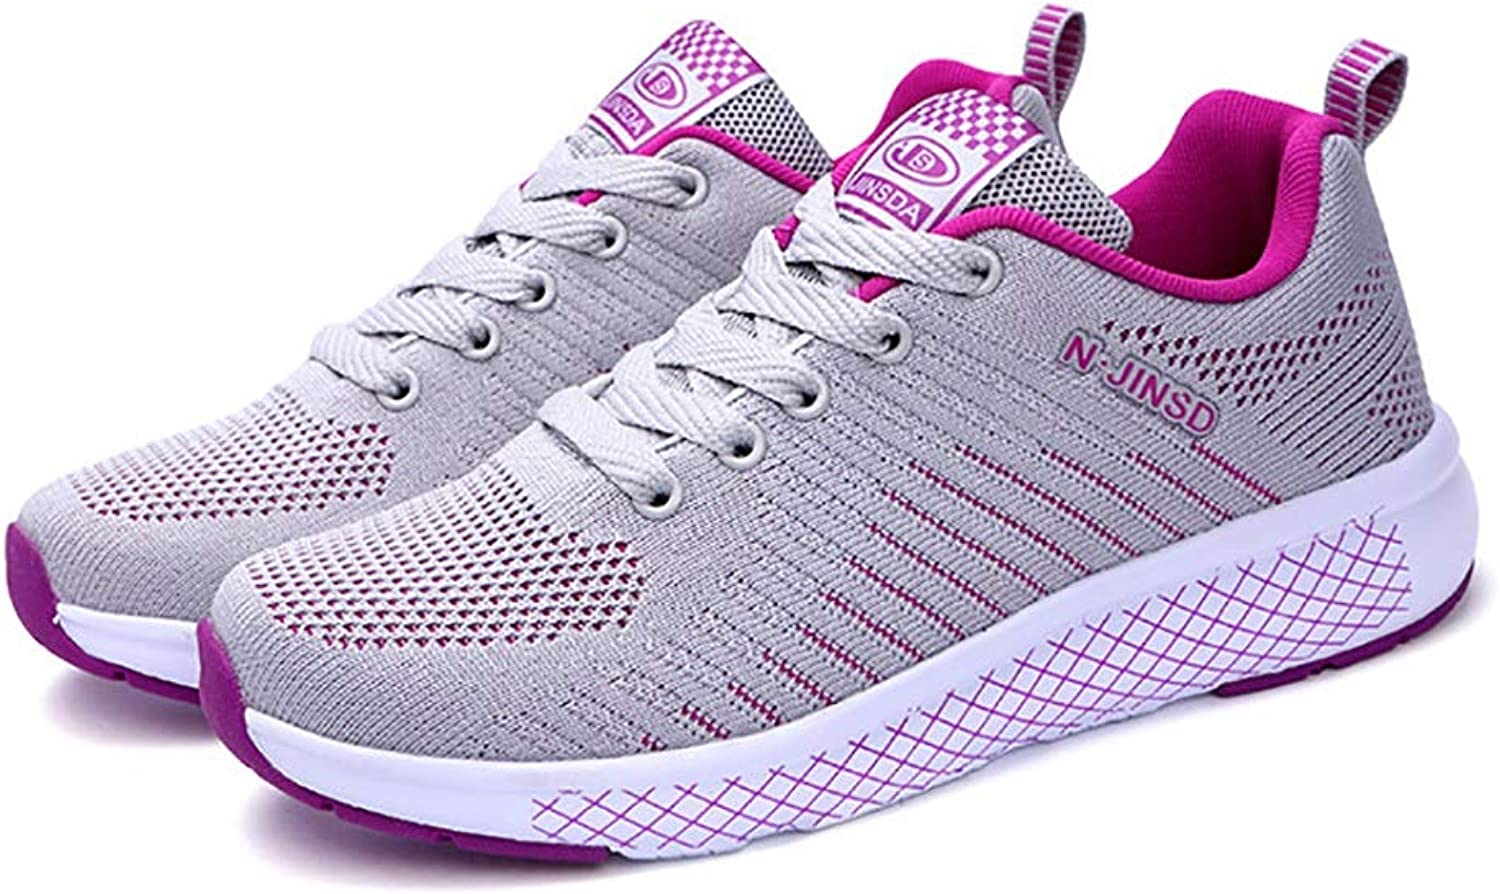 Women's shoes Knit Sport shoes Light Hiking Sneaker Spring Fall Shock Absorption Breathable Casual shoes Trainers shoes Camping Gym Walking (color   C, Size   40)